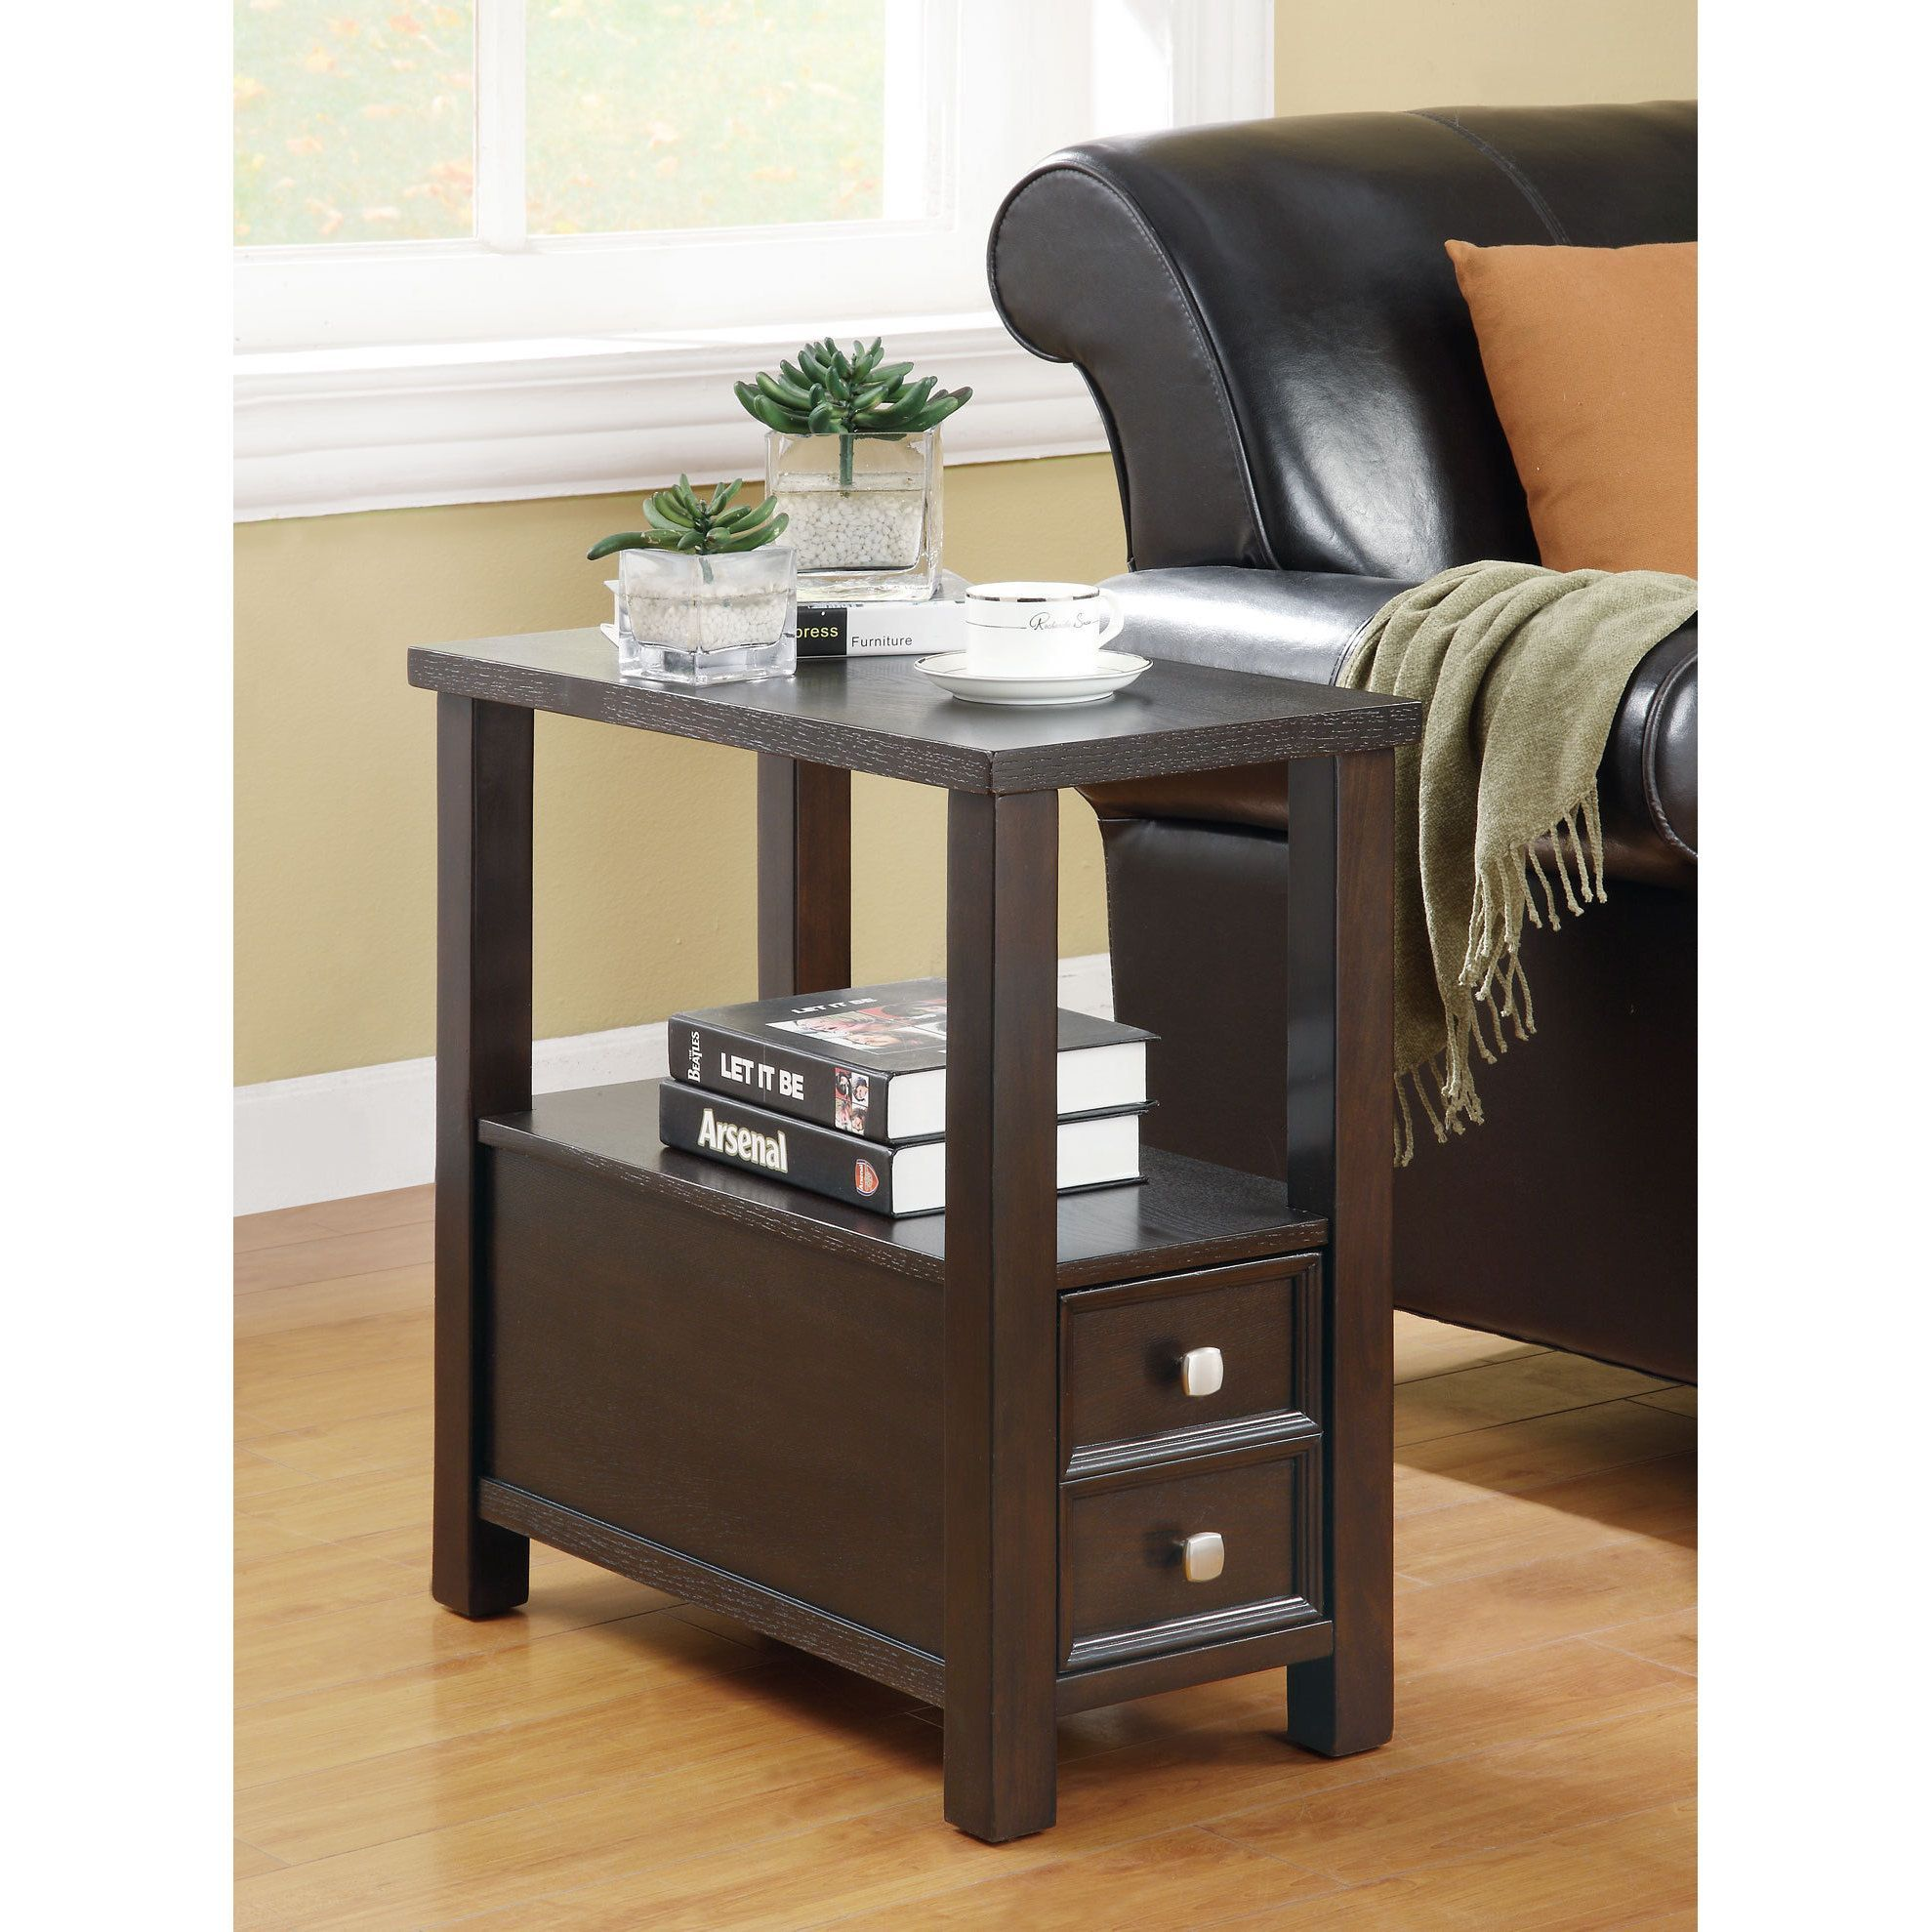 Coaster Company Cappuccino Single Drawer Side Table 24 X 12 X 24 Chair Side Table End Tables With Drawers Sofa End Tables